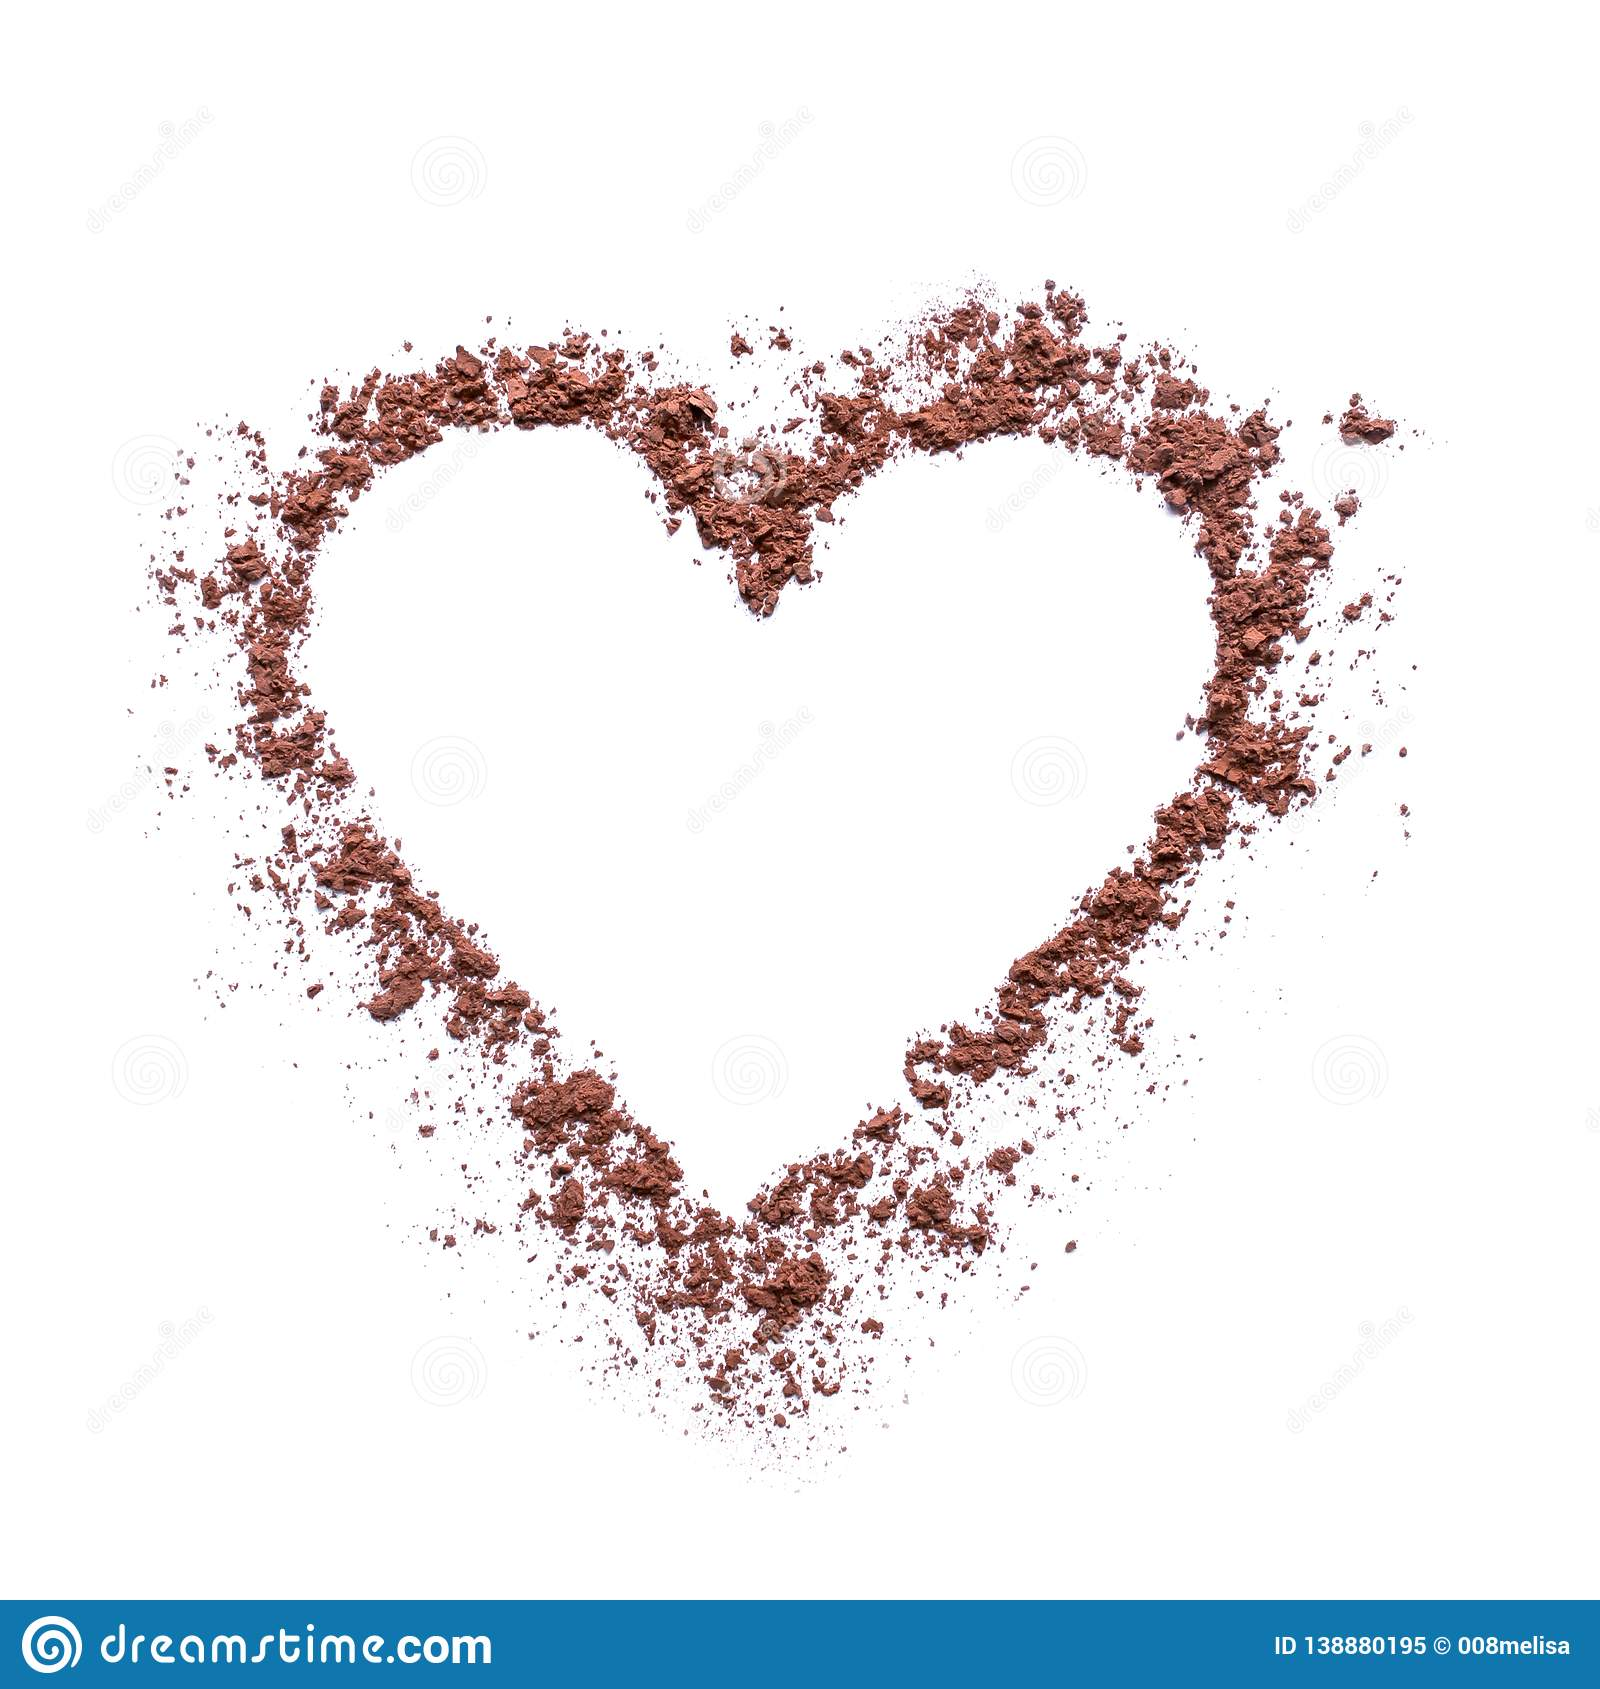 Cocoa powder or coffee in the shape of a heart.